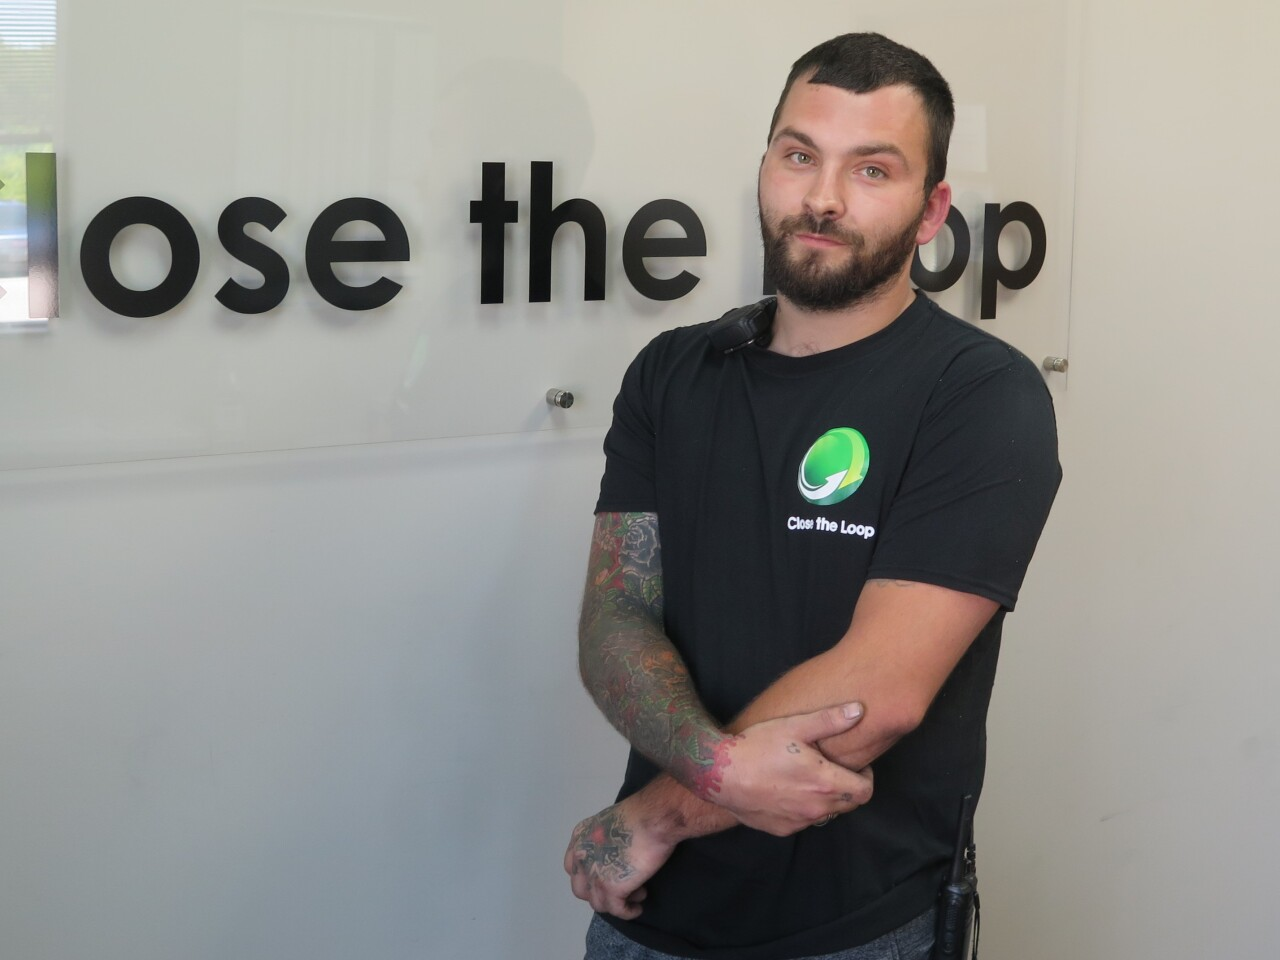 Adam Criss poses for a portrait in the main office of Close the Loop, the company where he works. Criss is wearing a black t-shirt and has his arms crossed in front of him.